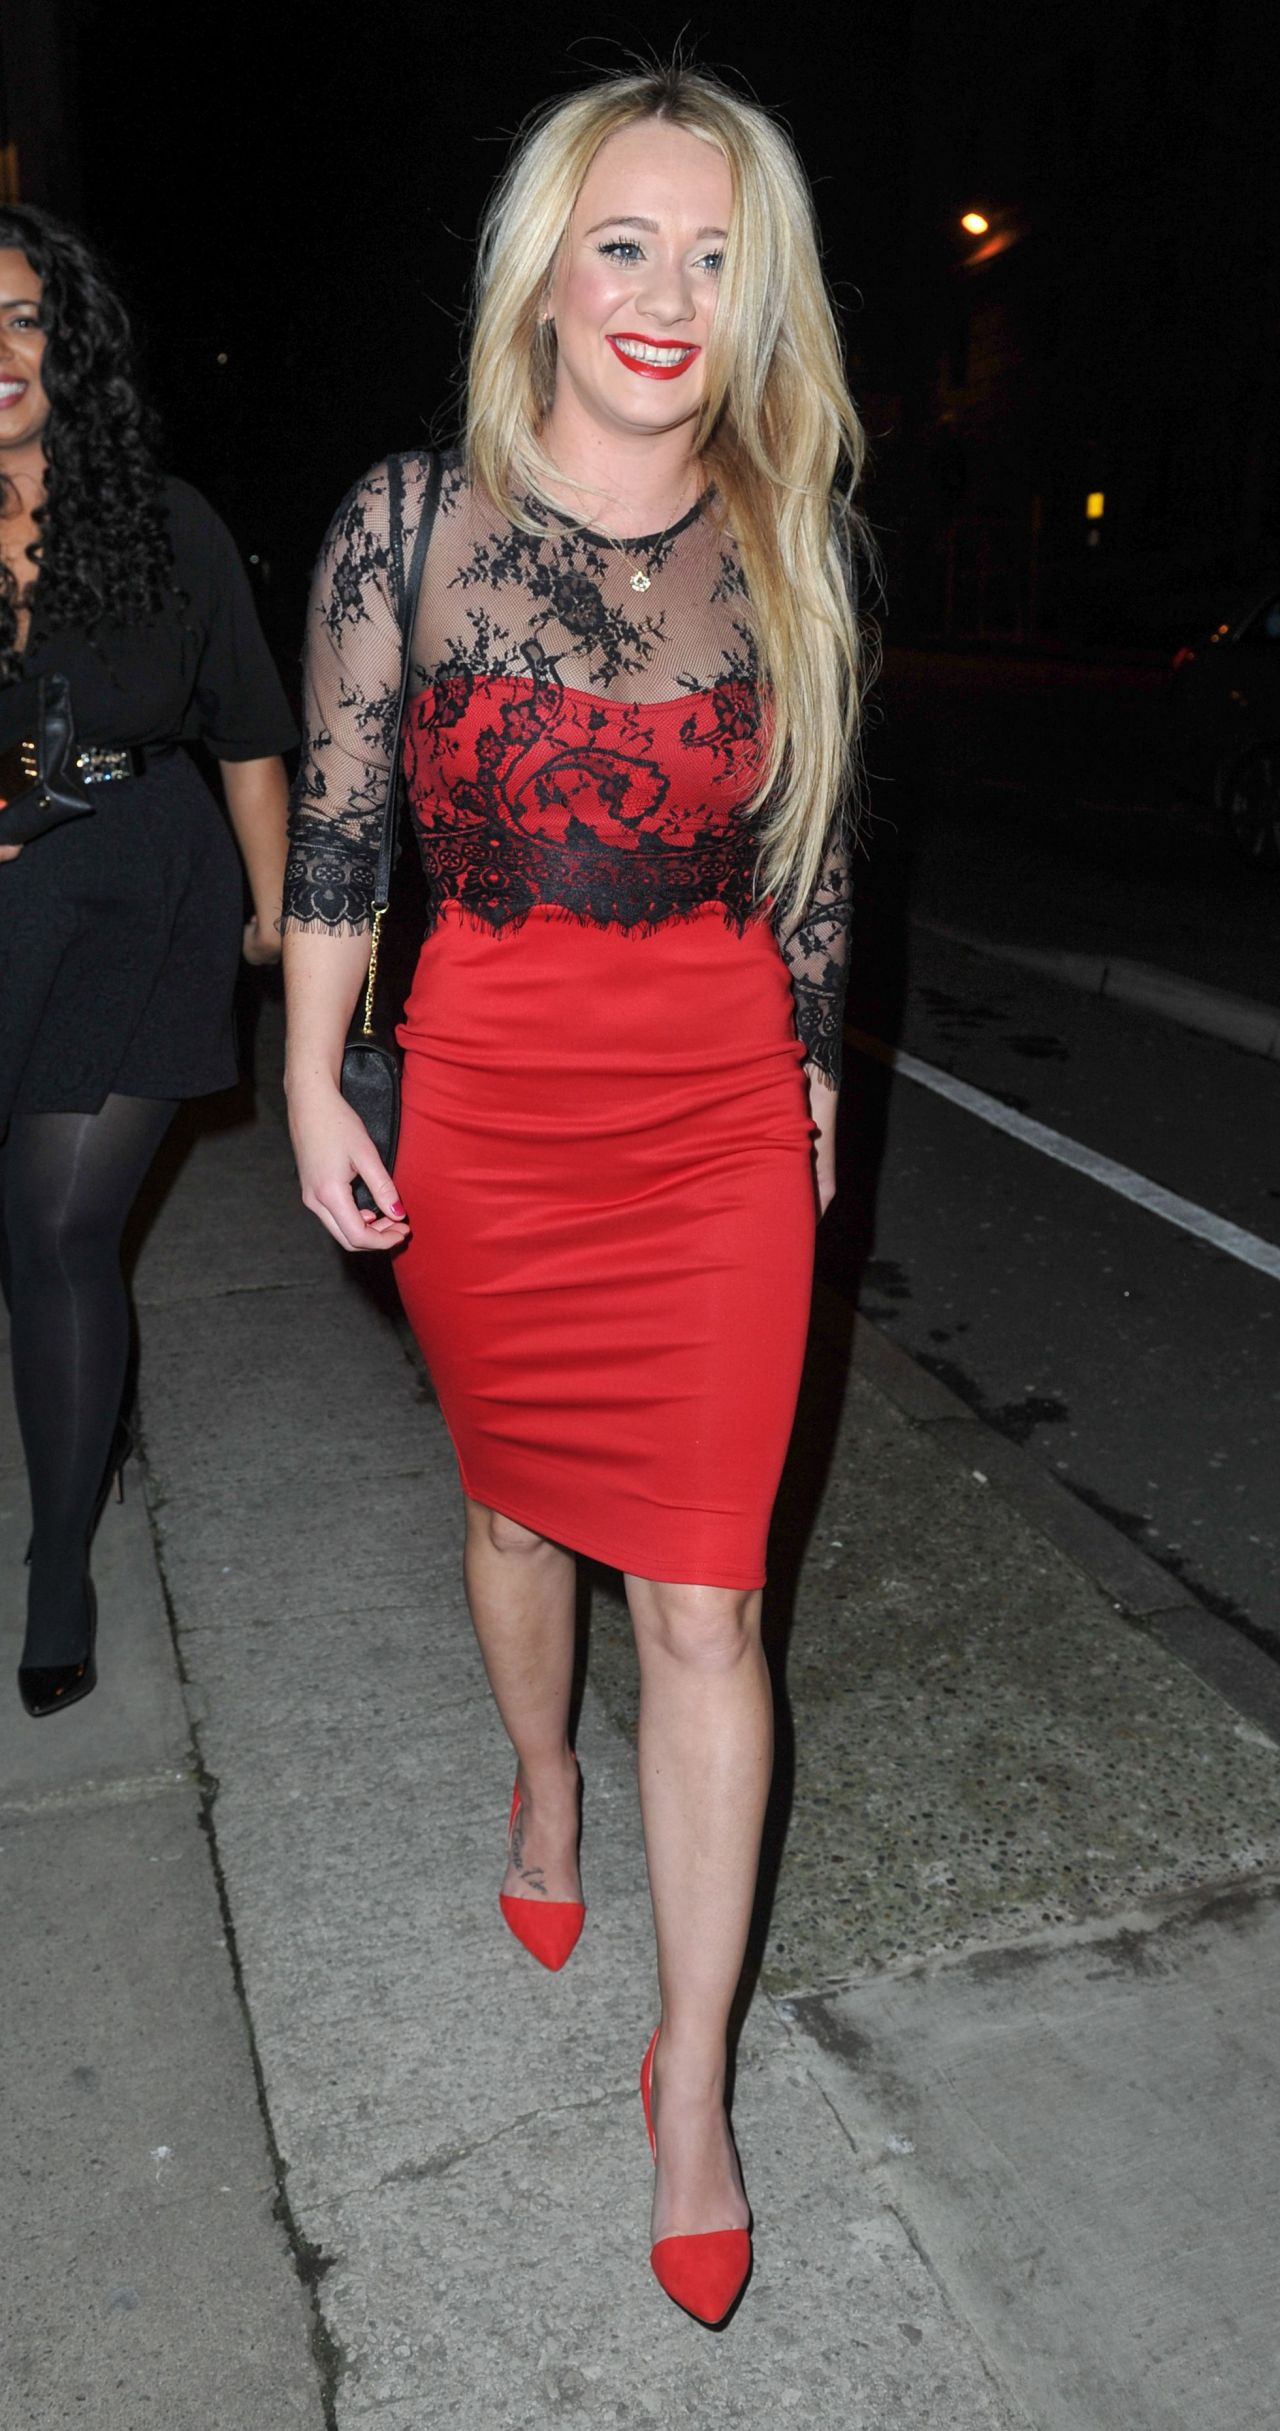 Kirsty-Leigh Porter Night Out Style – at The Amanzi Restaurant in Liverpool, Jan. 2015